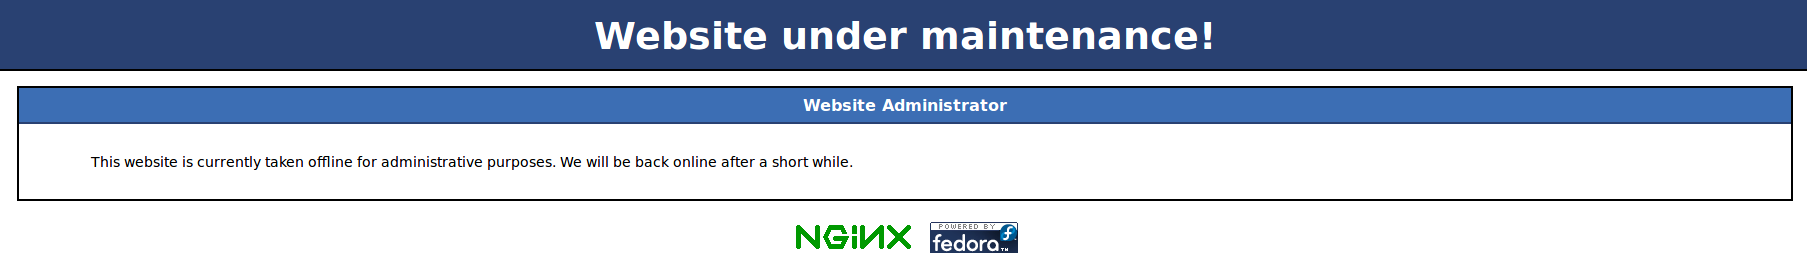 Configuring nginx for quickly switching to maintenance mode